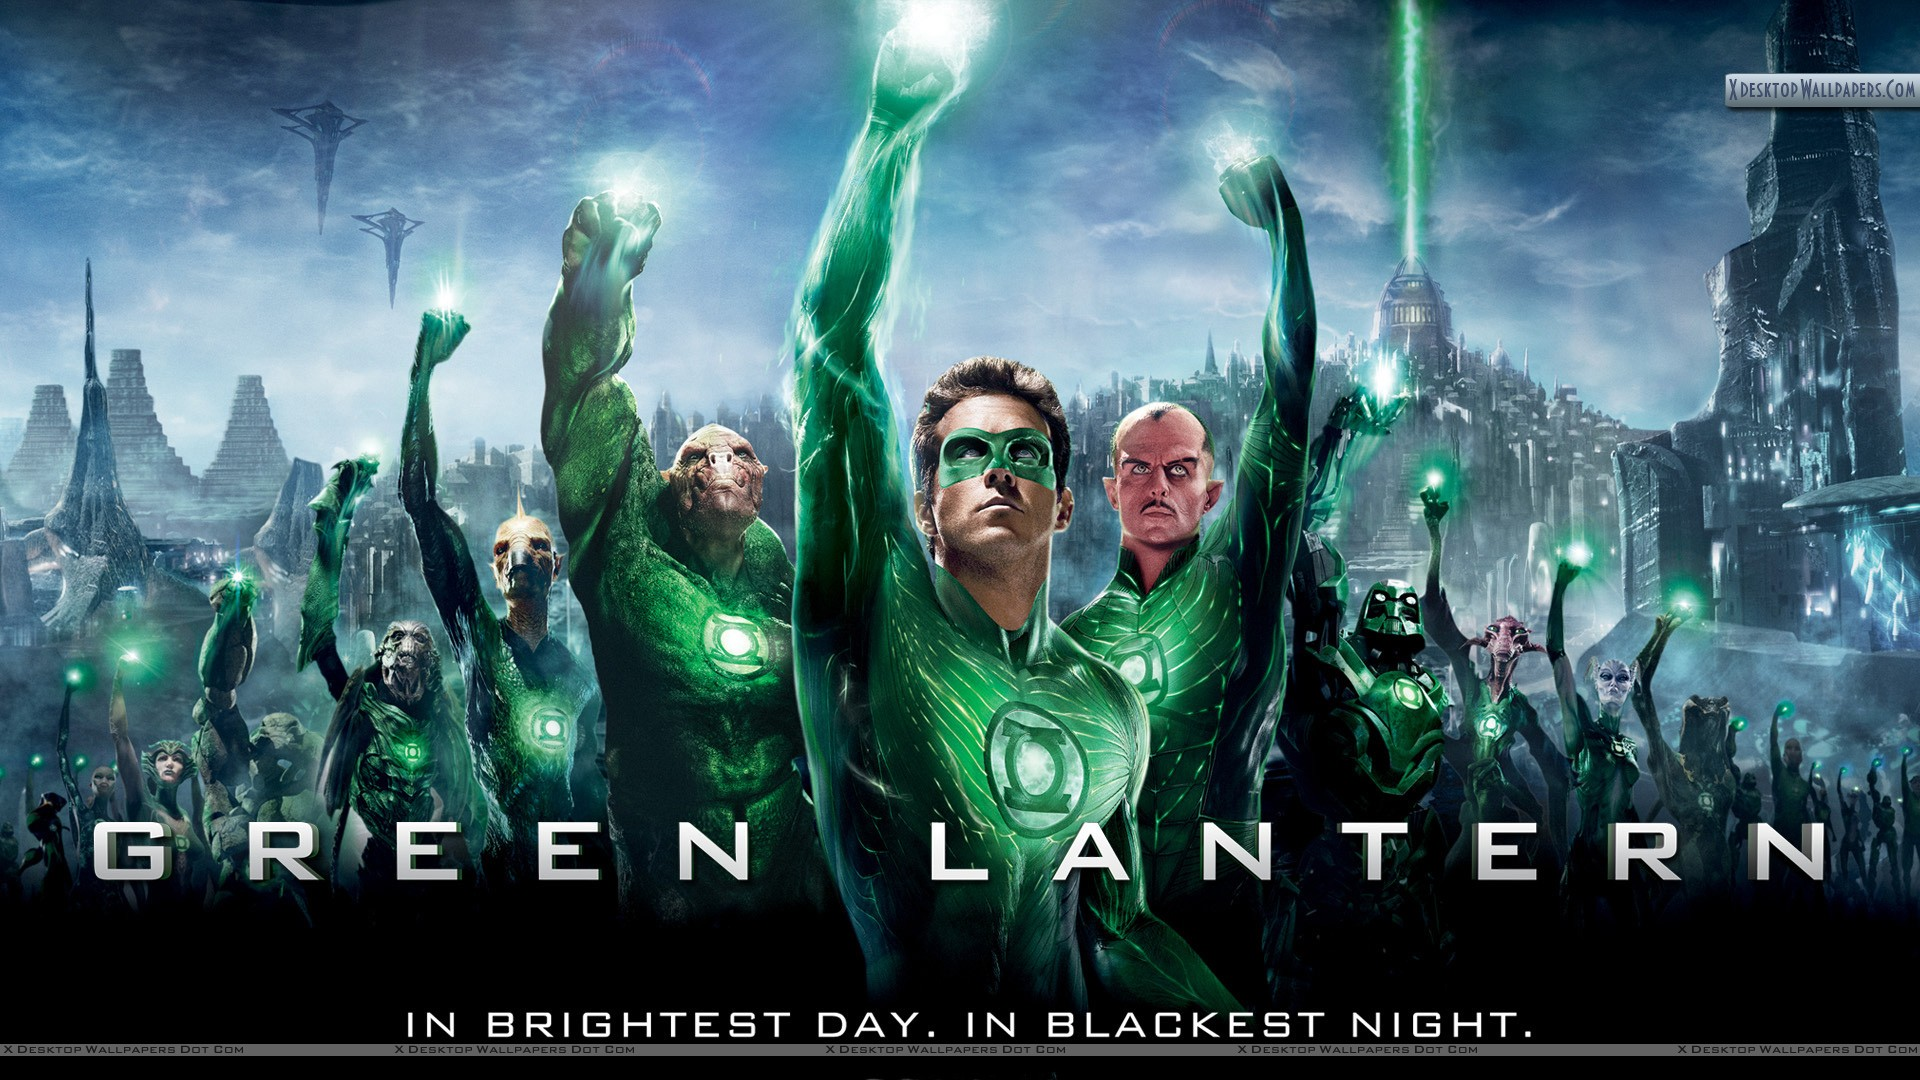 green lantern wallpapers, photos & images in hd